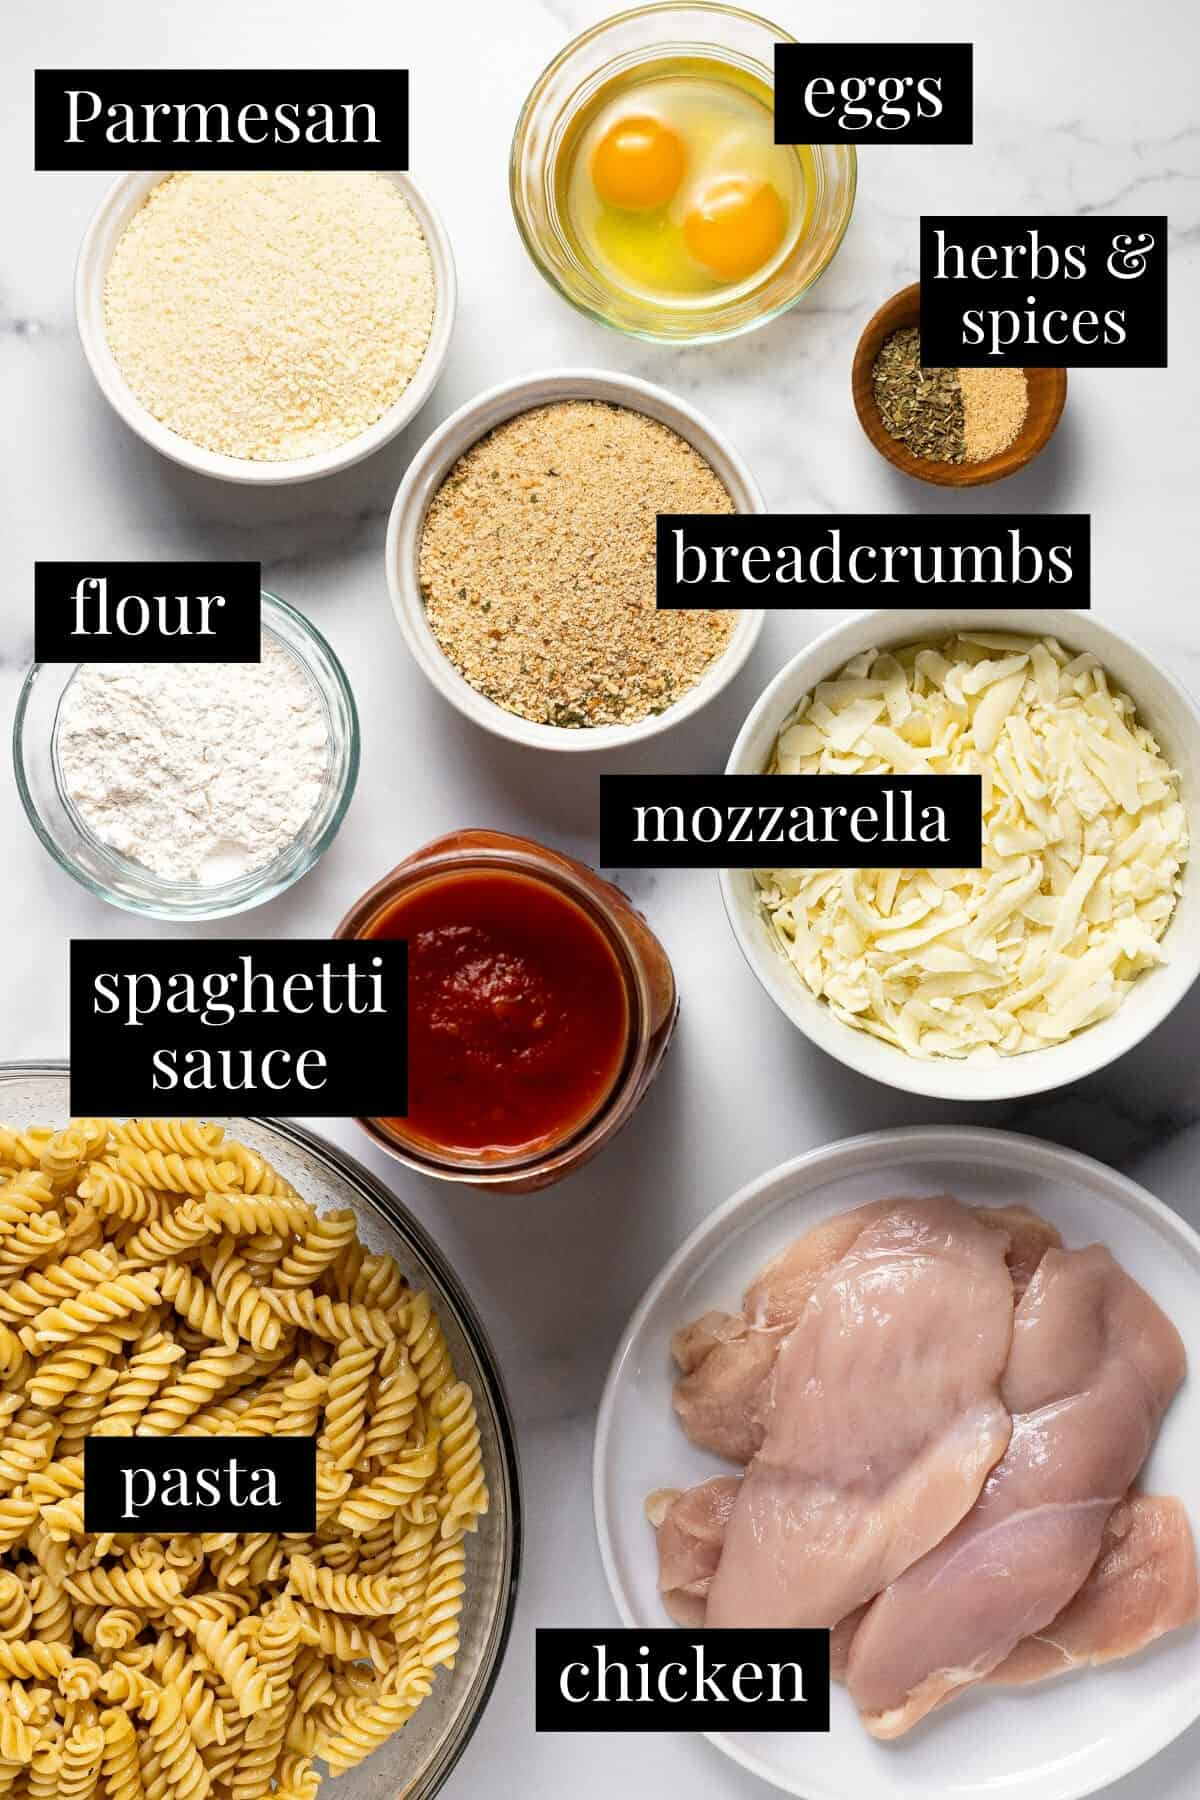 White marble counter top with ingredients to make chicken Parmesan casserole